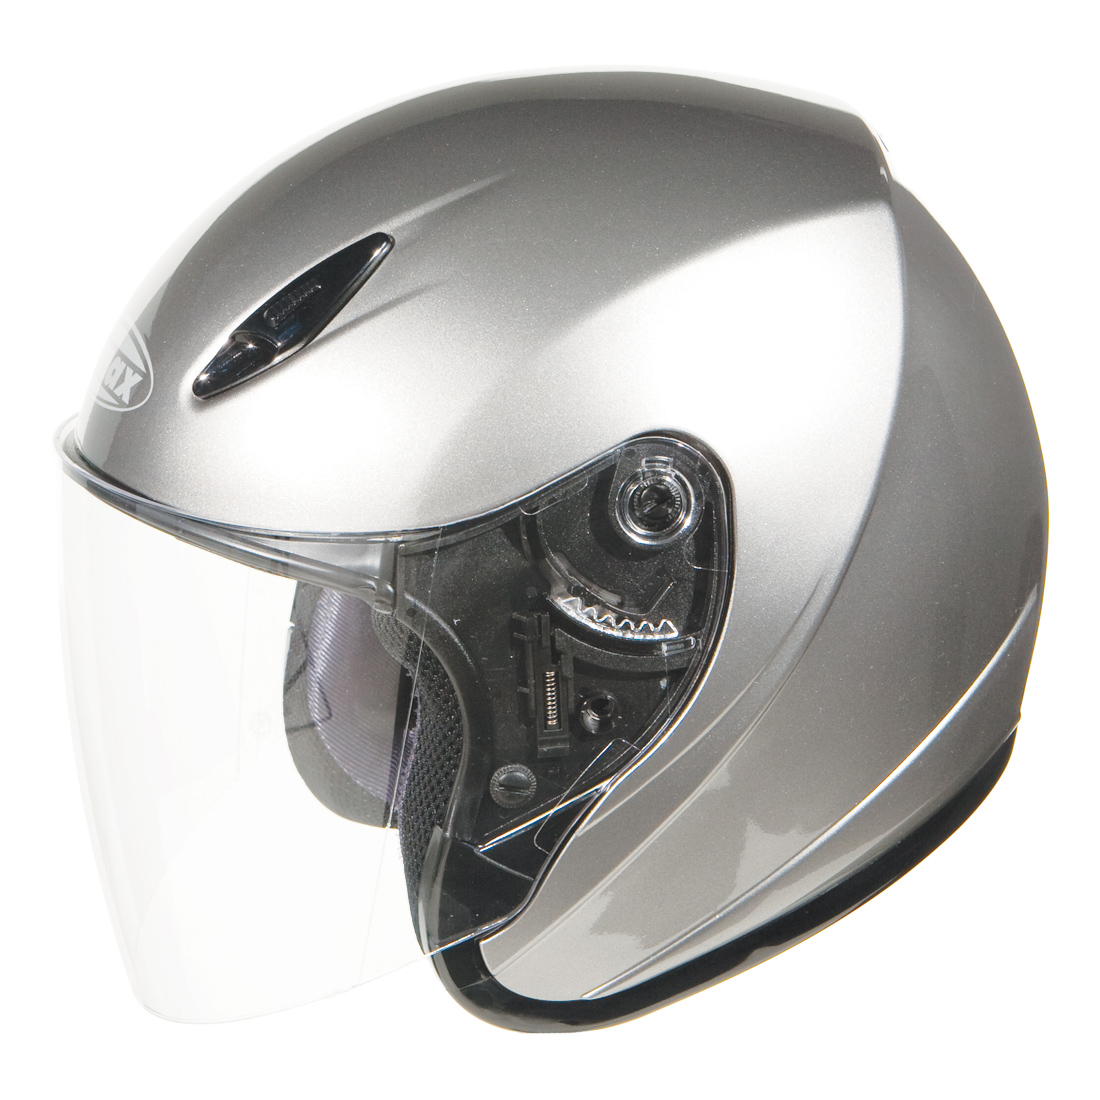 GMAX GM17 Dark Silver Metallic Open Face Helmet